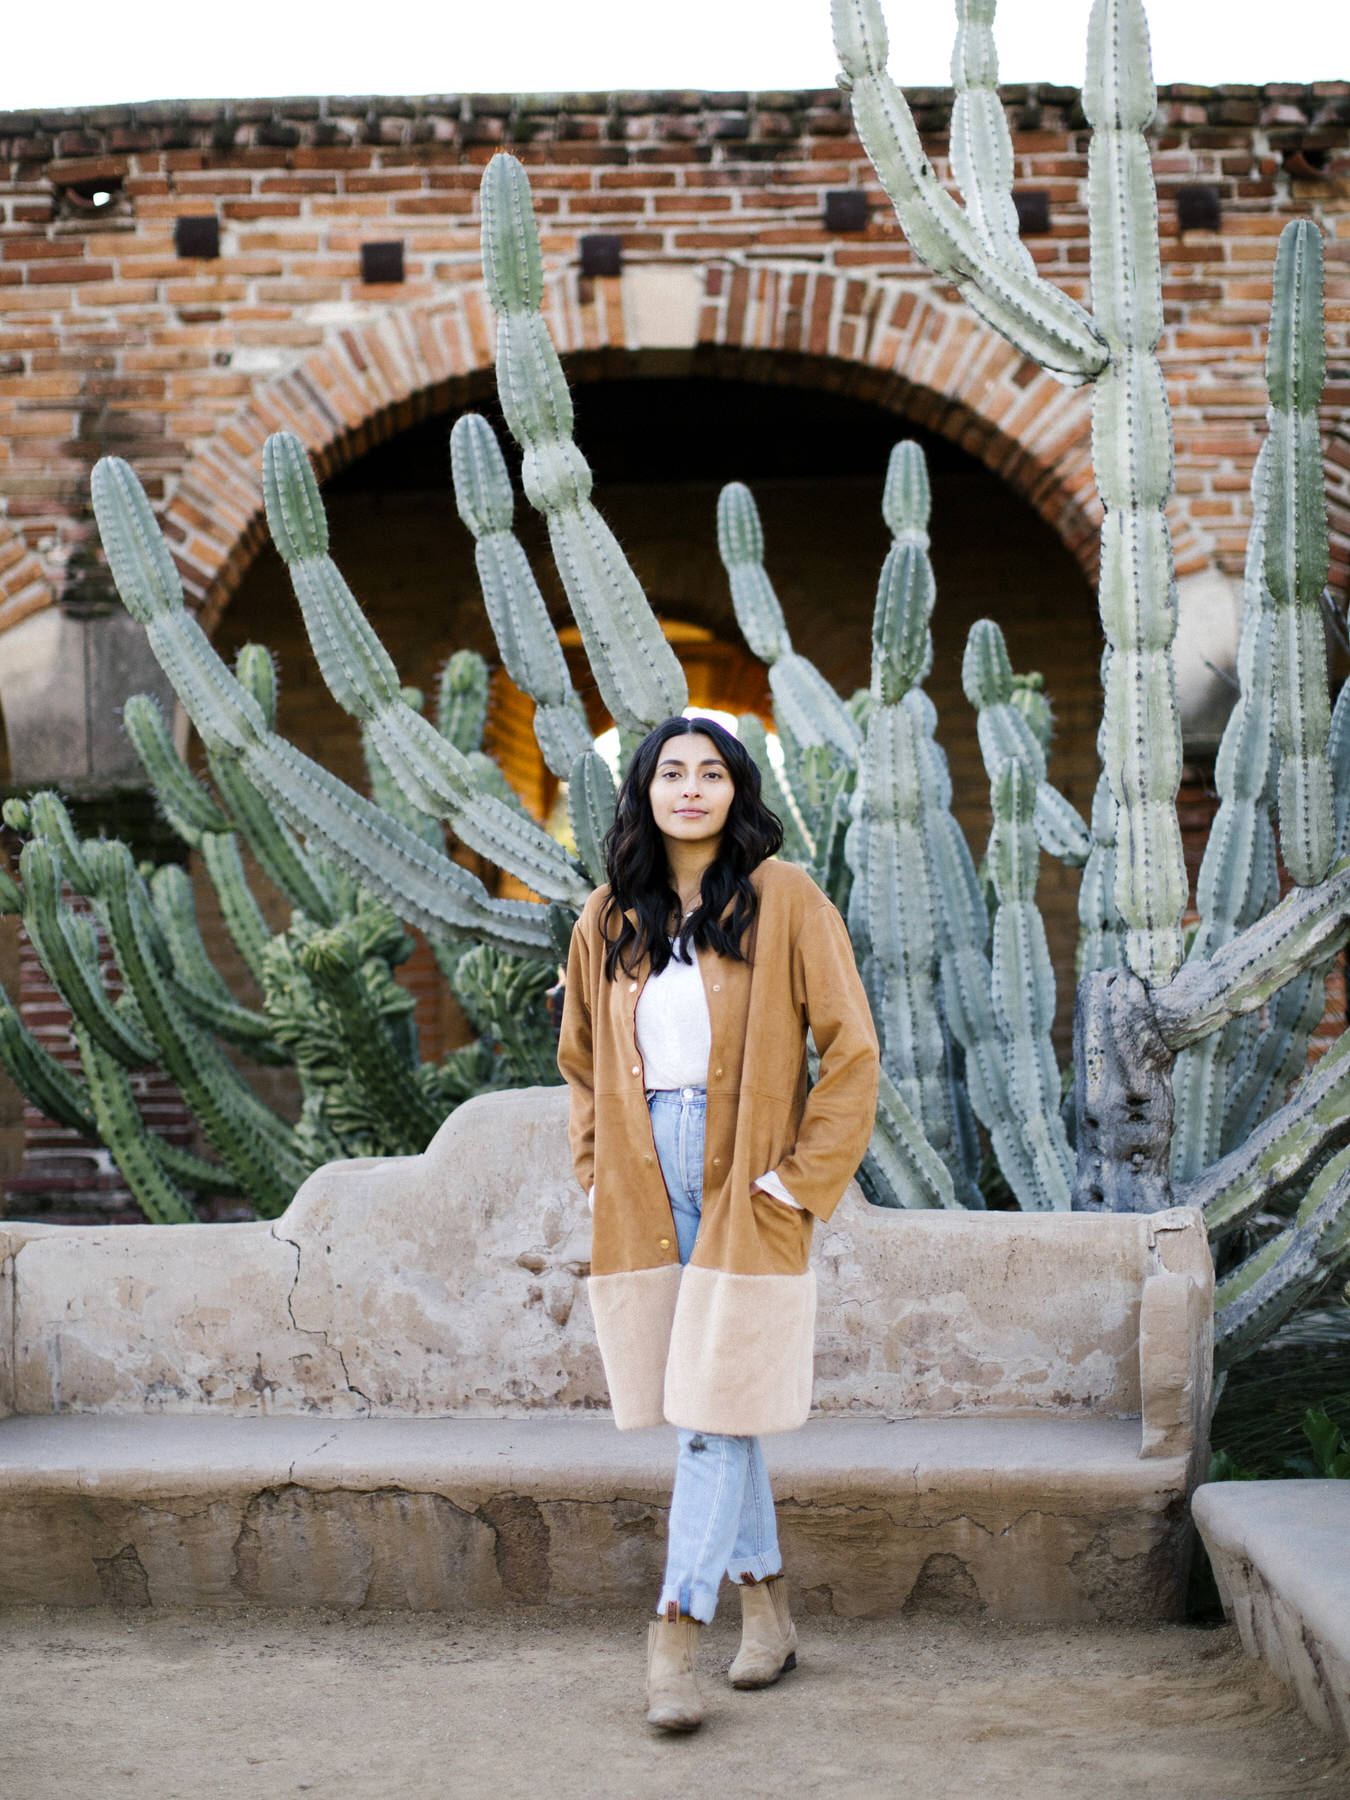 Valerie Metz standing in front of large cactus